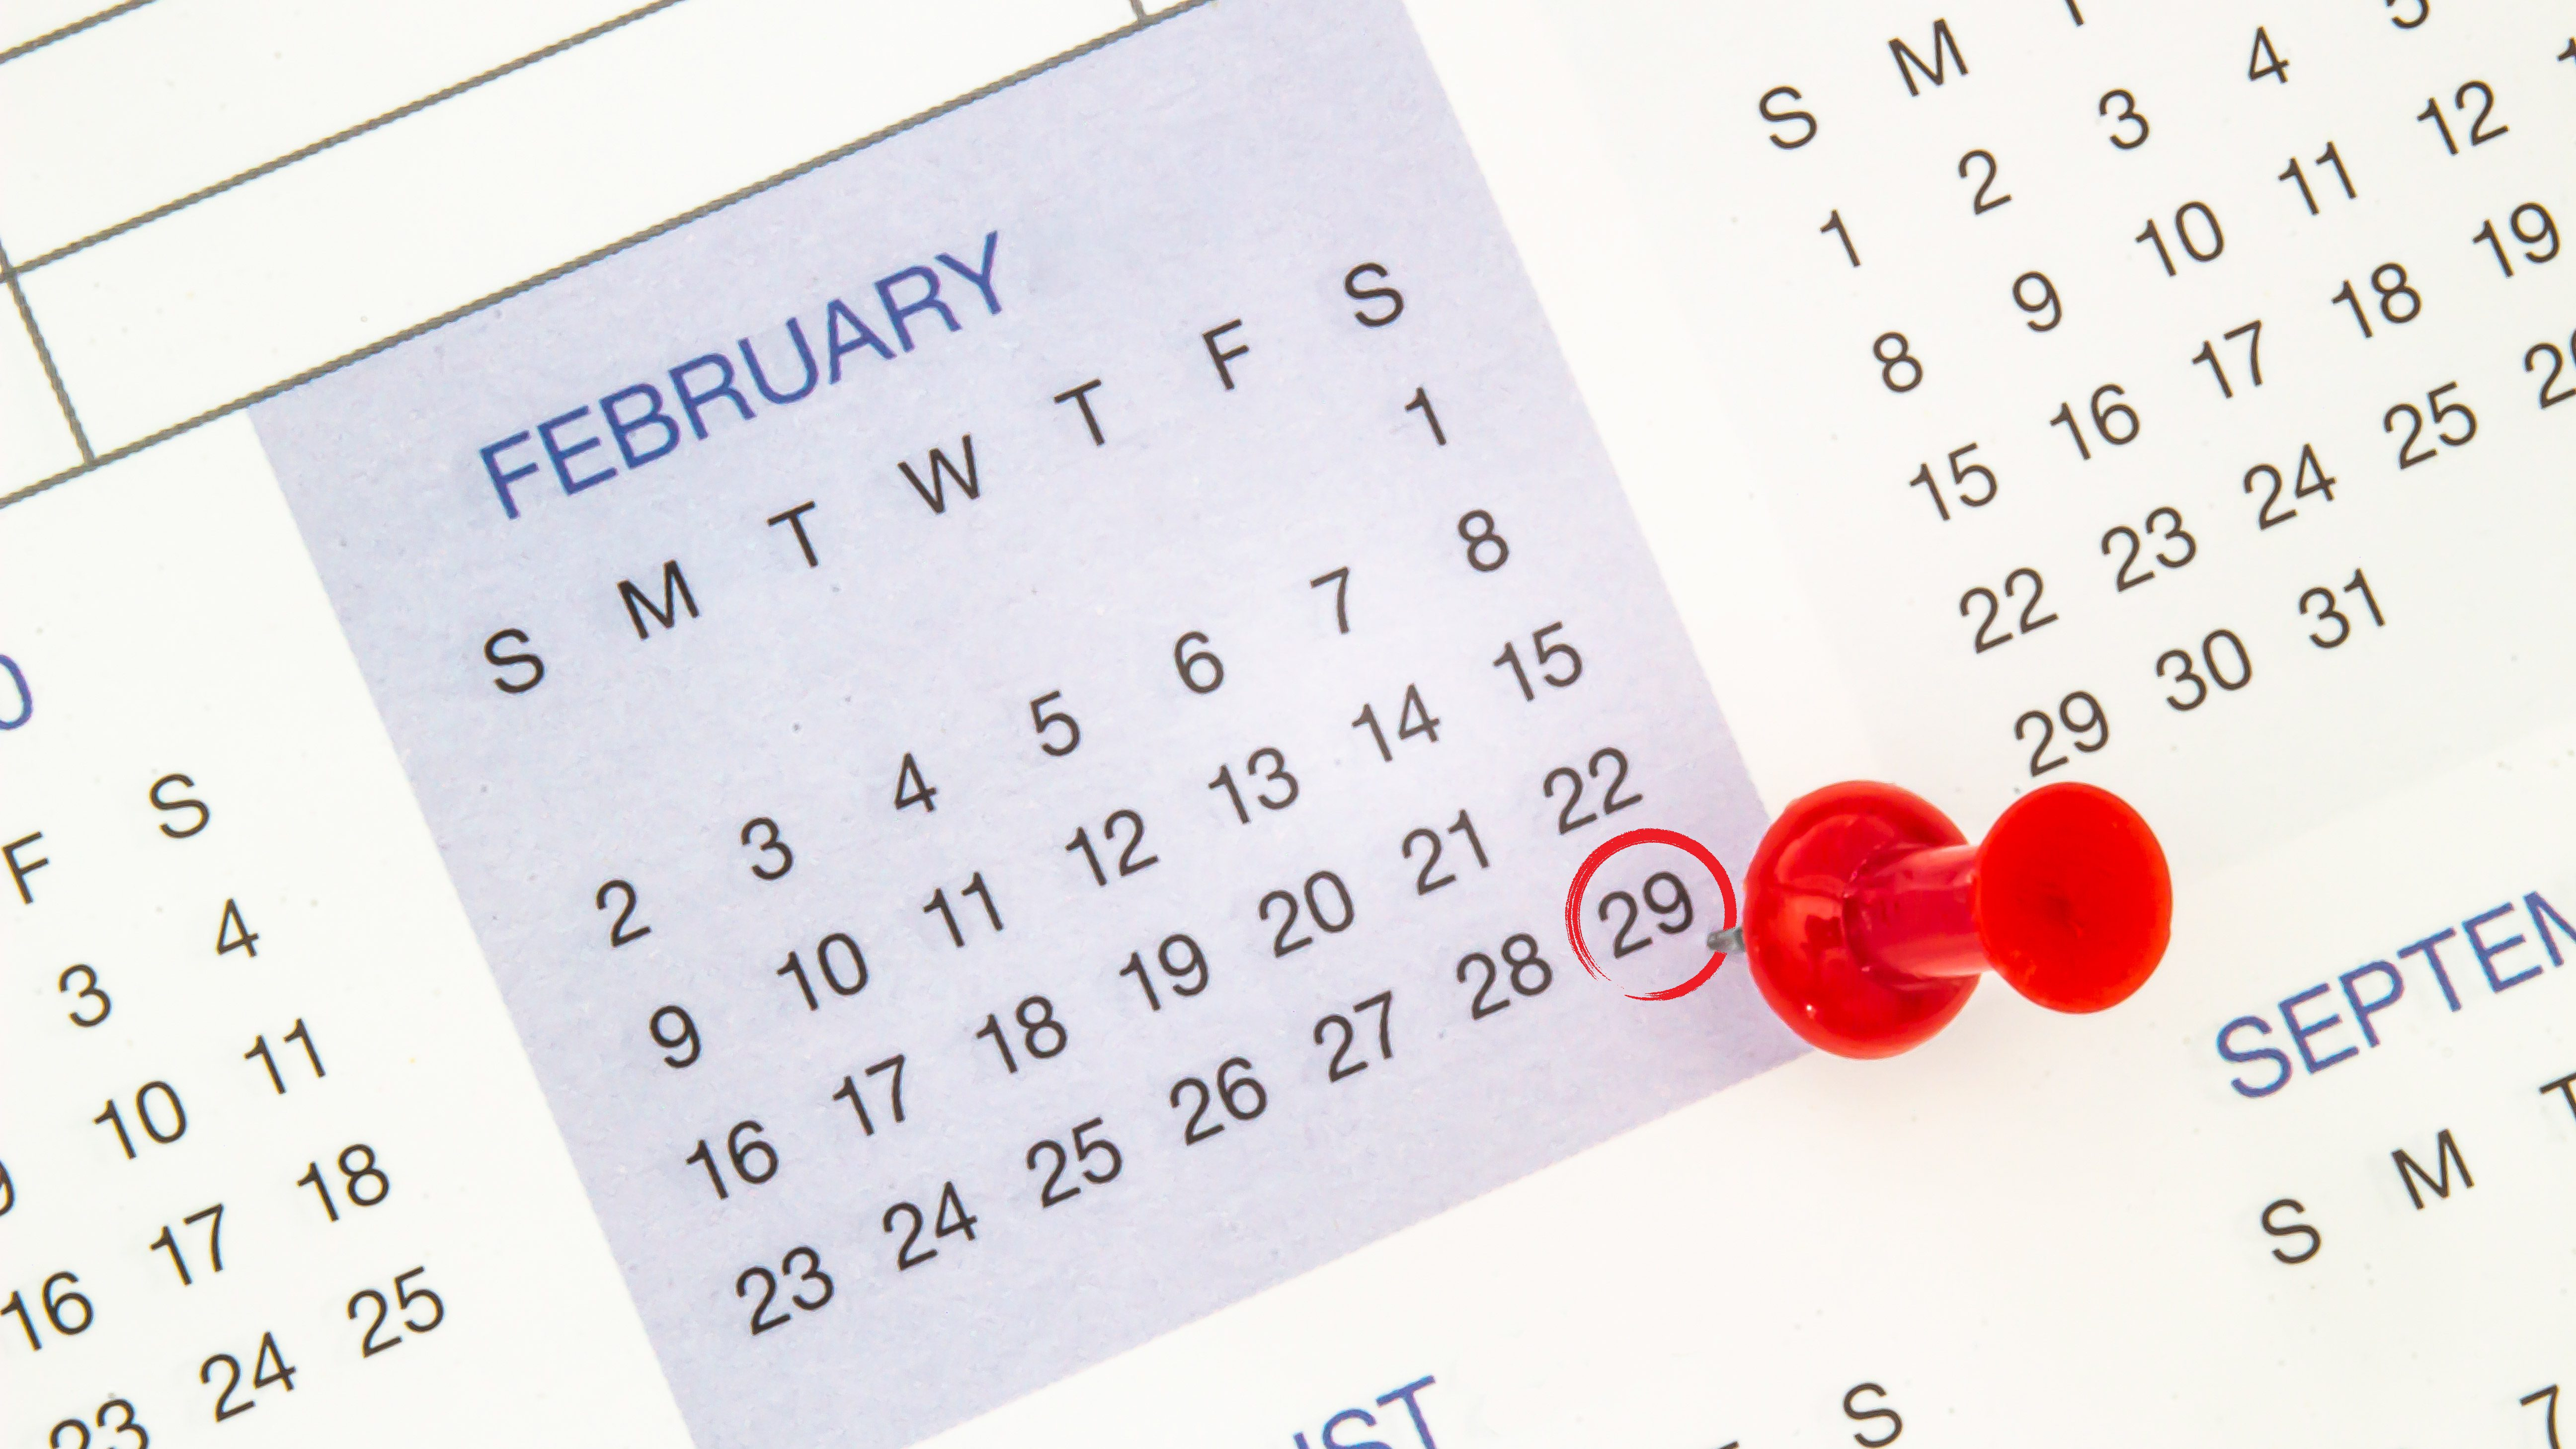 calendar with circle and pin on february 29th. leap day. leap year.